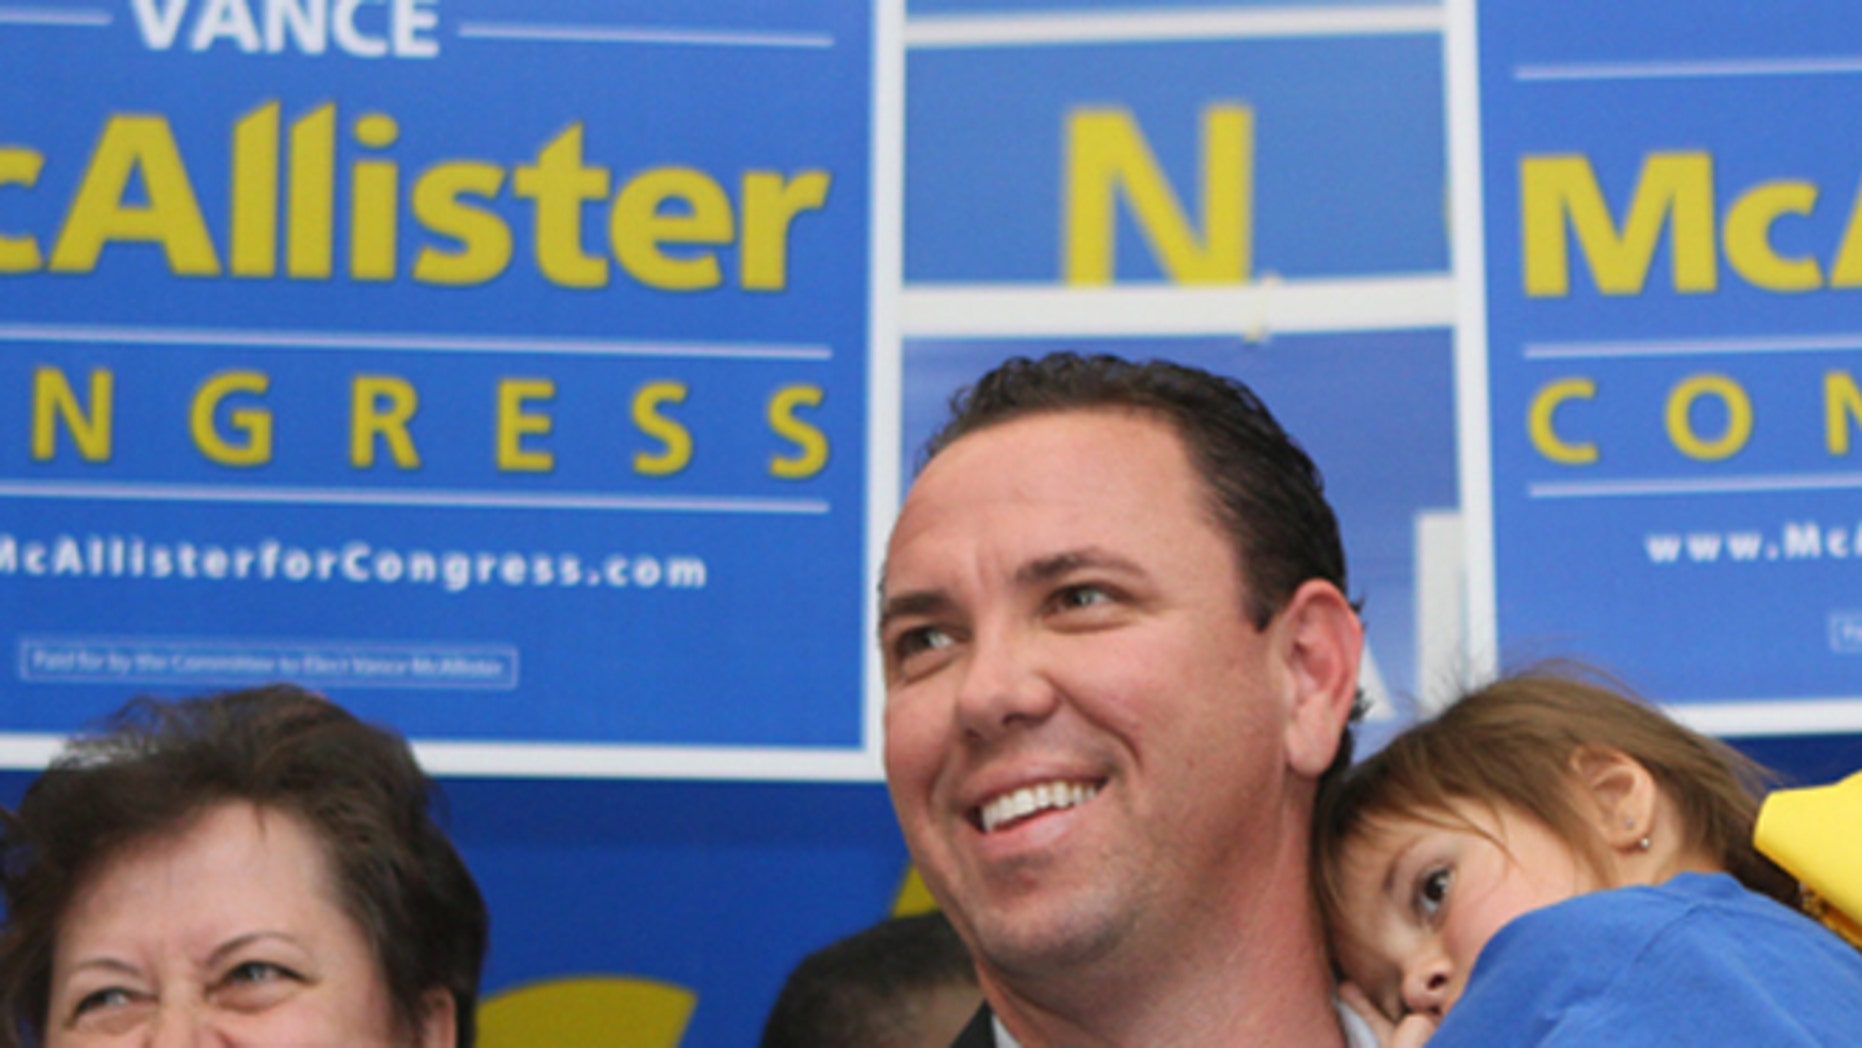 FILE: Sat., Nov. 16, 2013: Republican Vance McAllister celebrates with his family and supporters after winning a congressional district election in Louisiana.